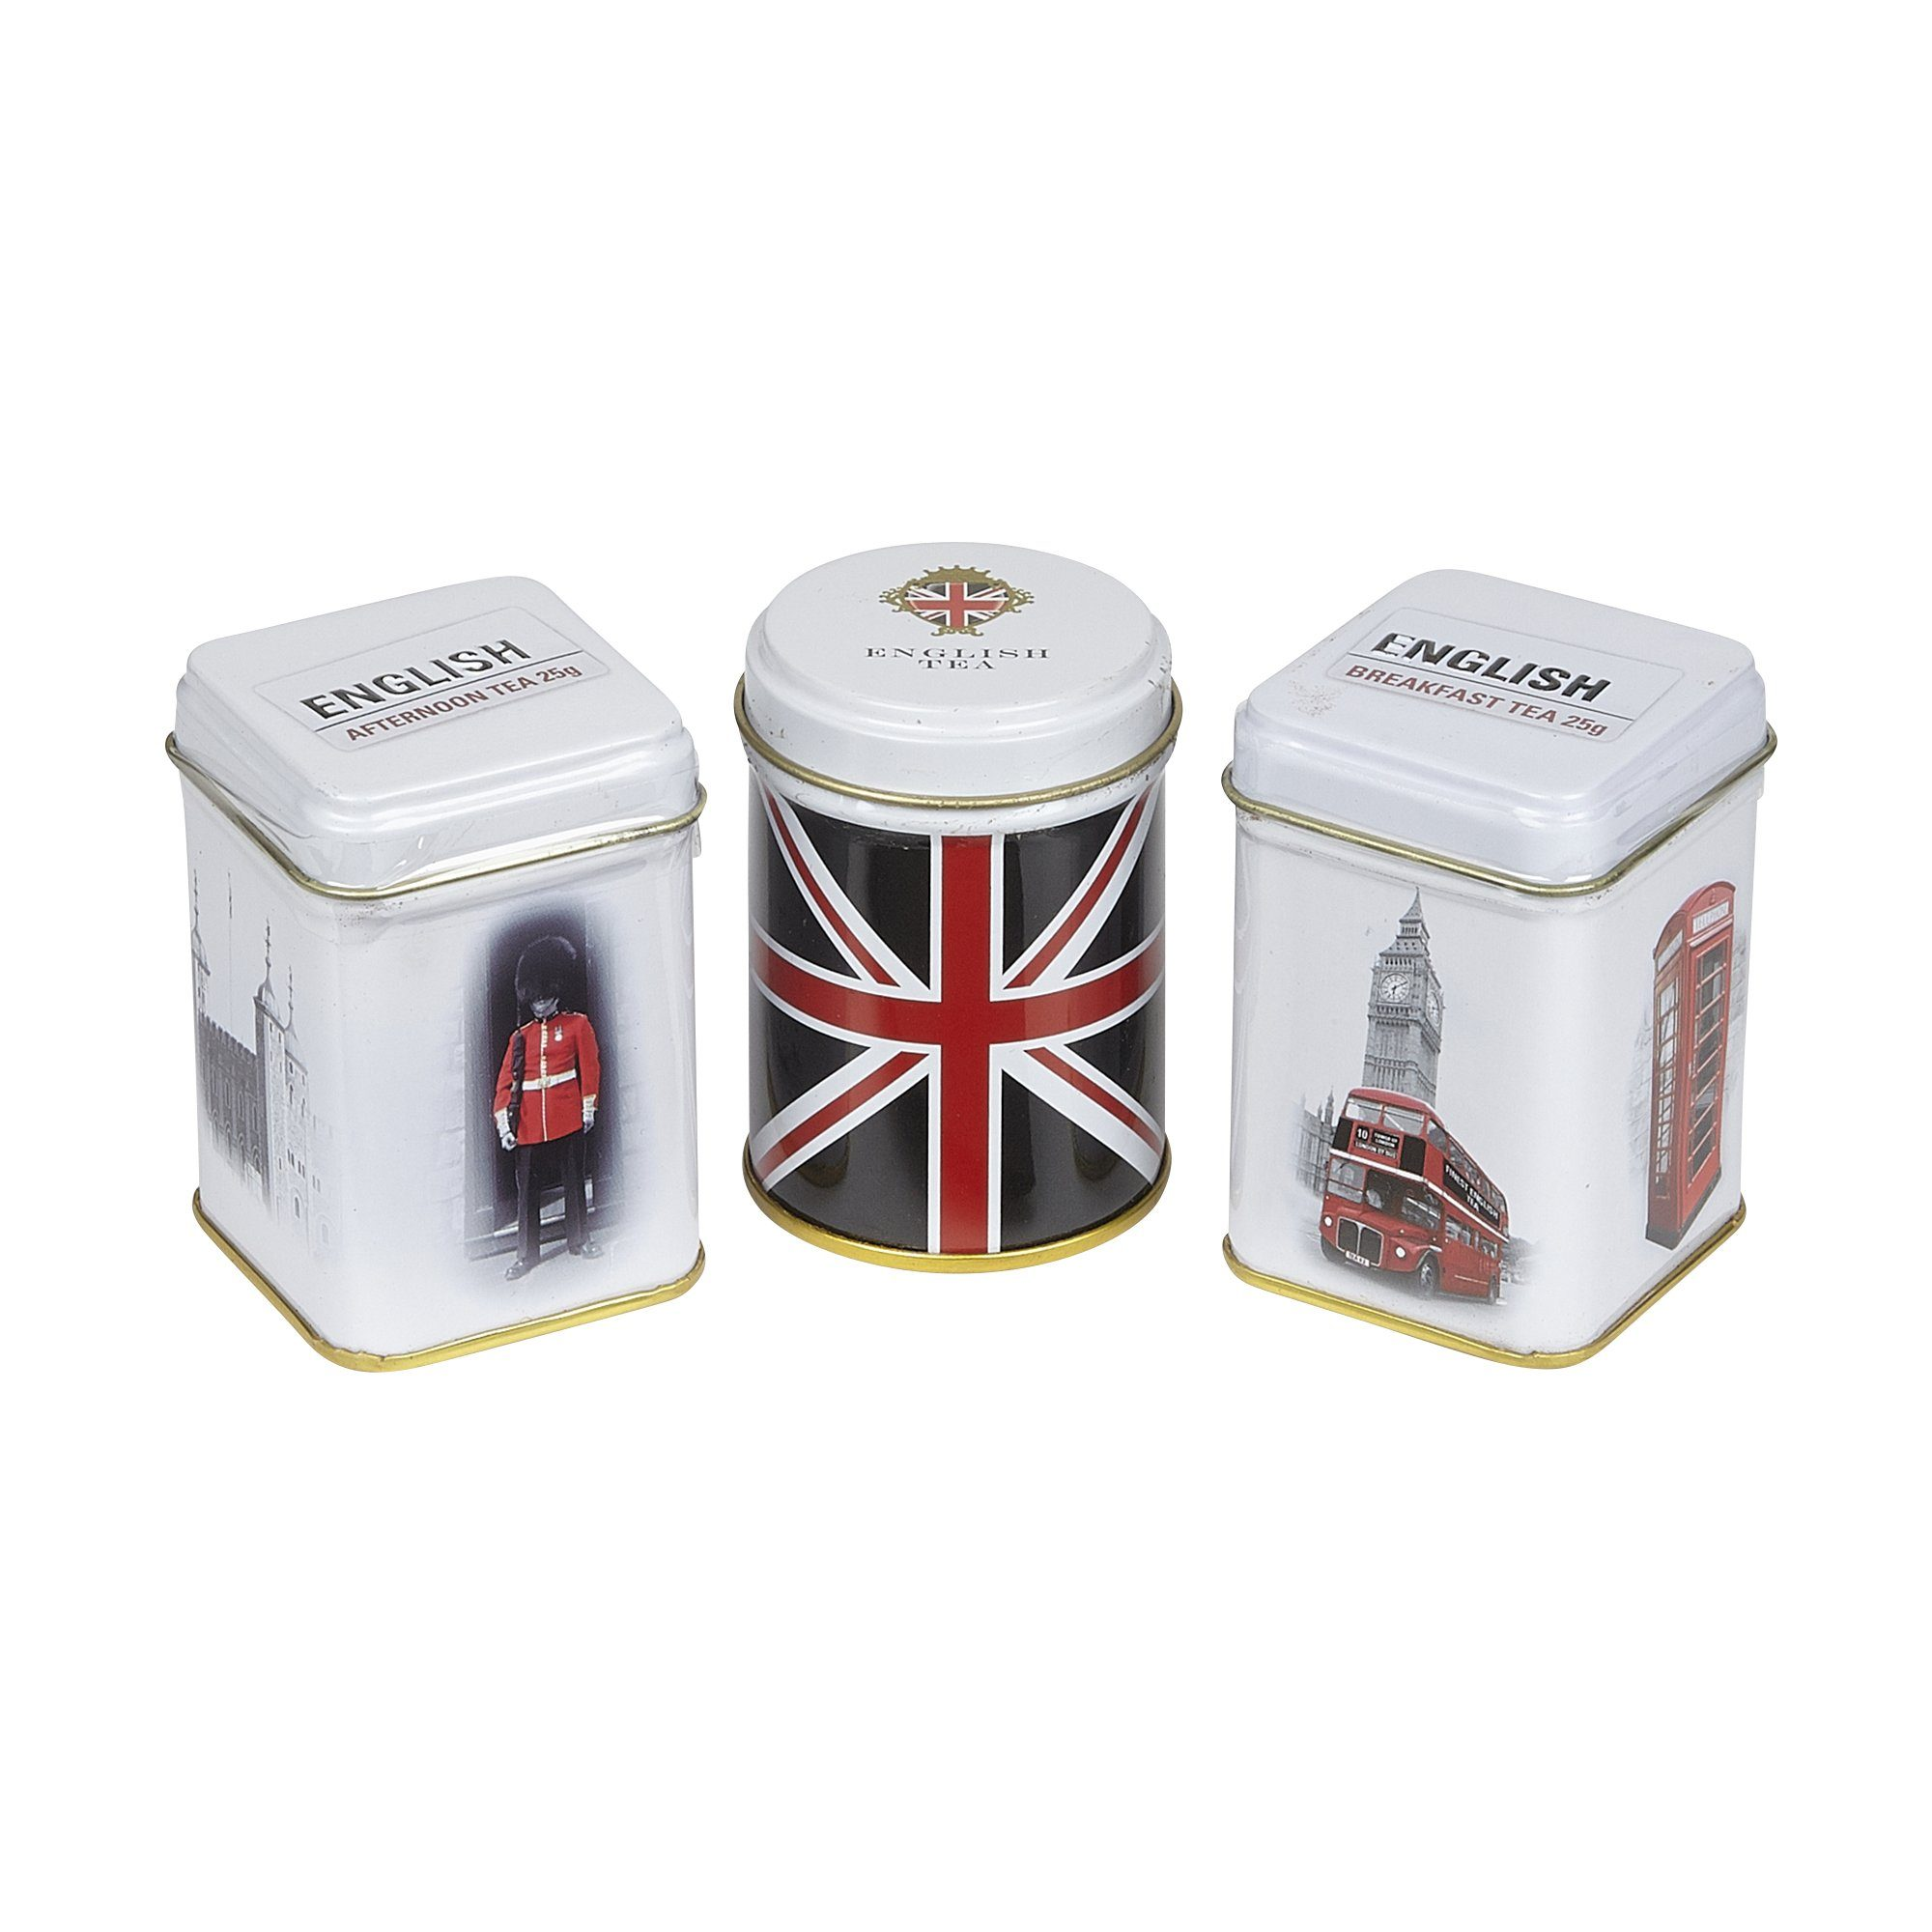 Best of British Triple Tea Selection Mini Tin Gift Pack Black Tea New English Teas